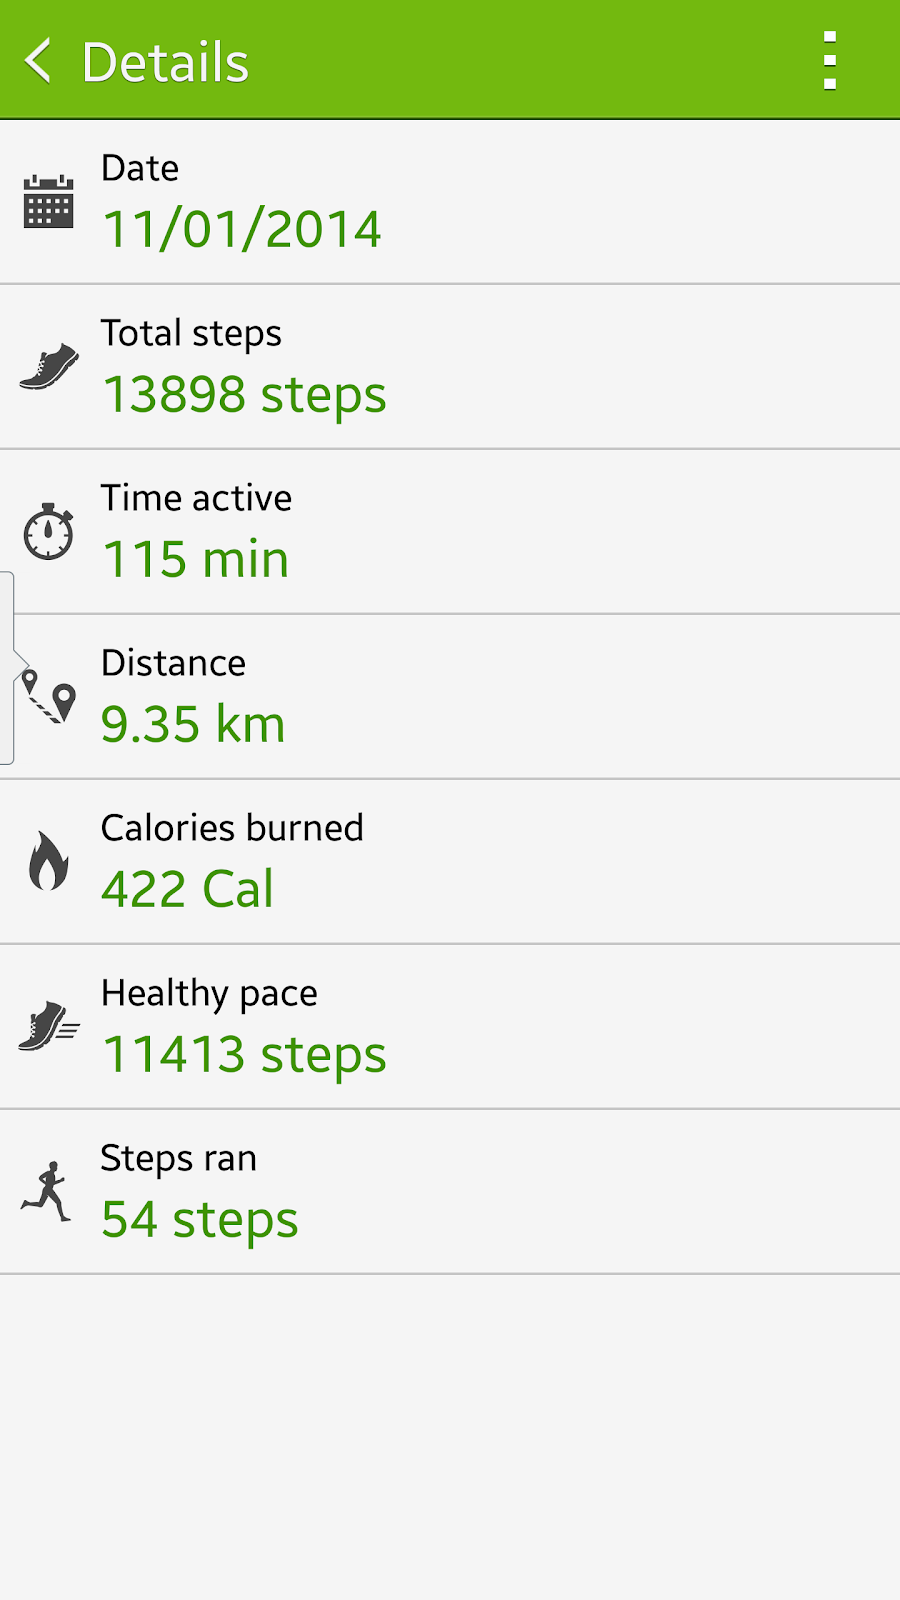 Exercise done for the day.